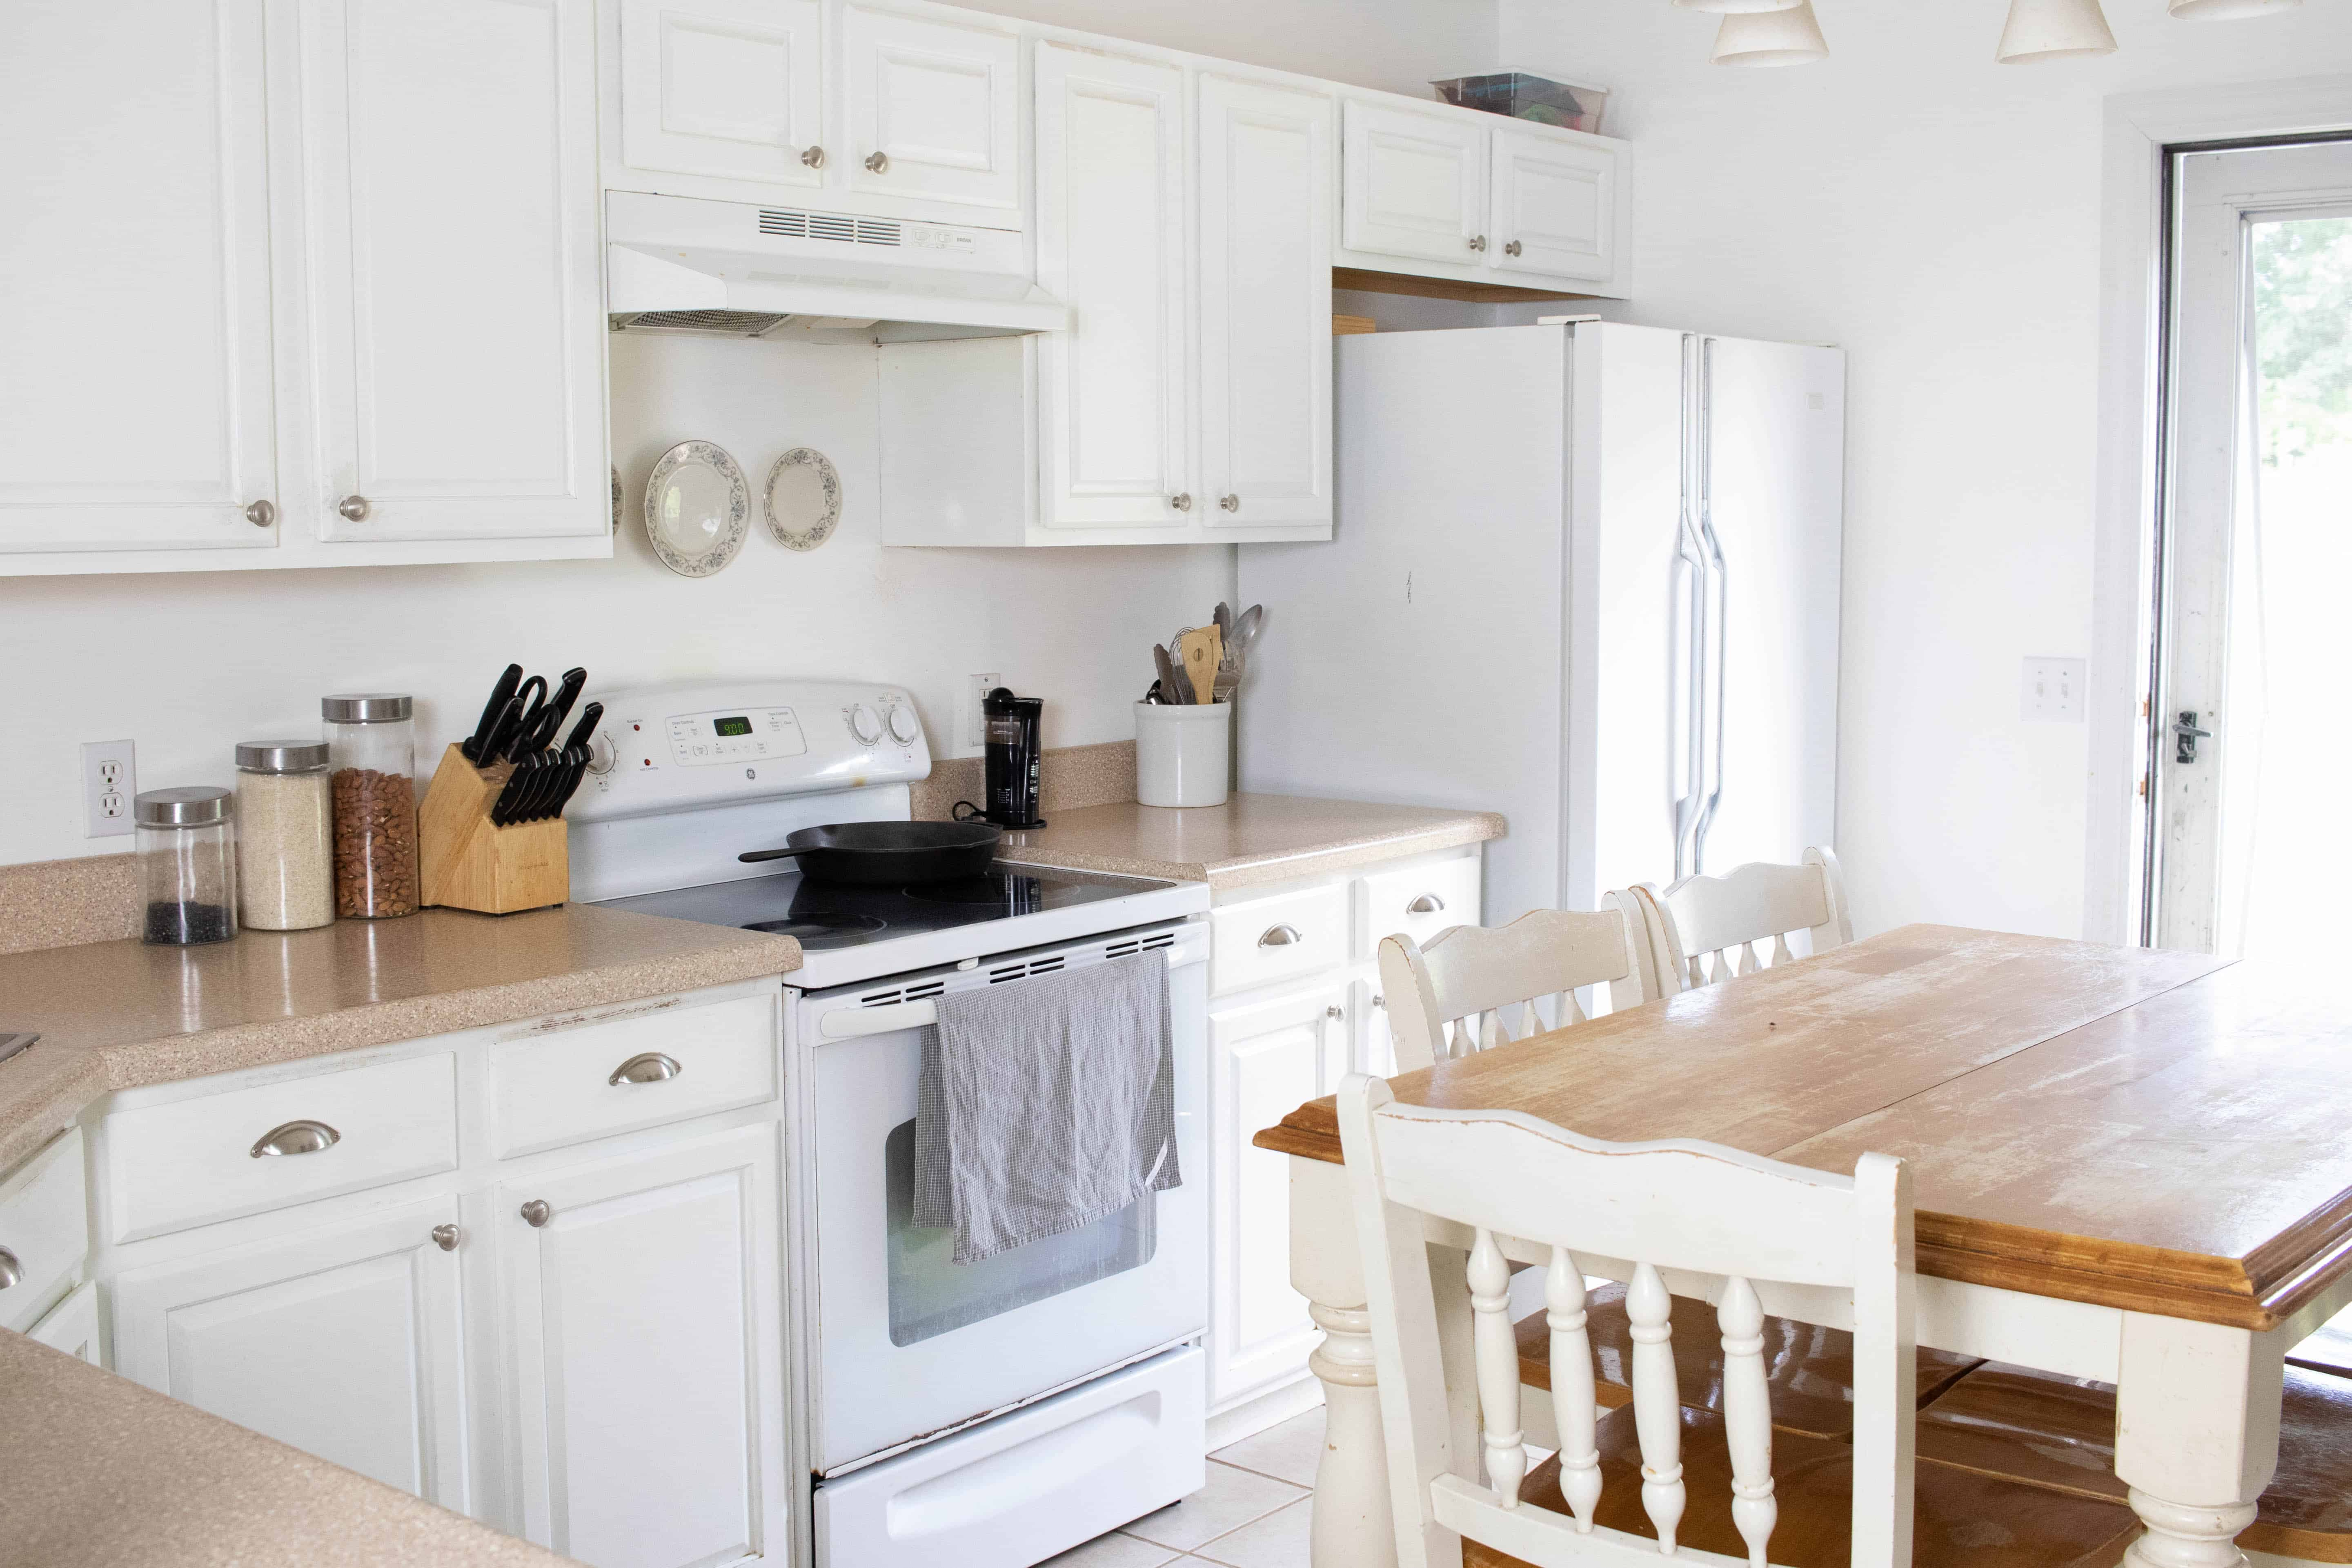 Clean organized kitchen with white cabinets, brown countertops, and white appliances.